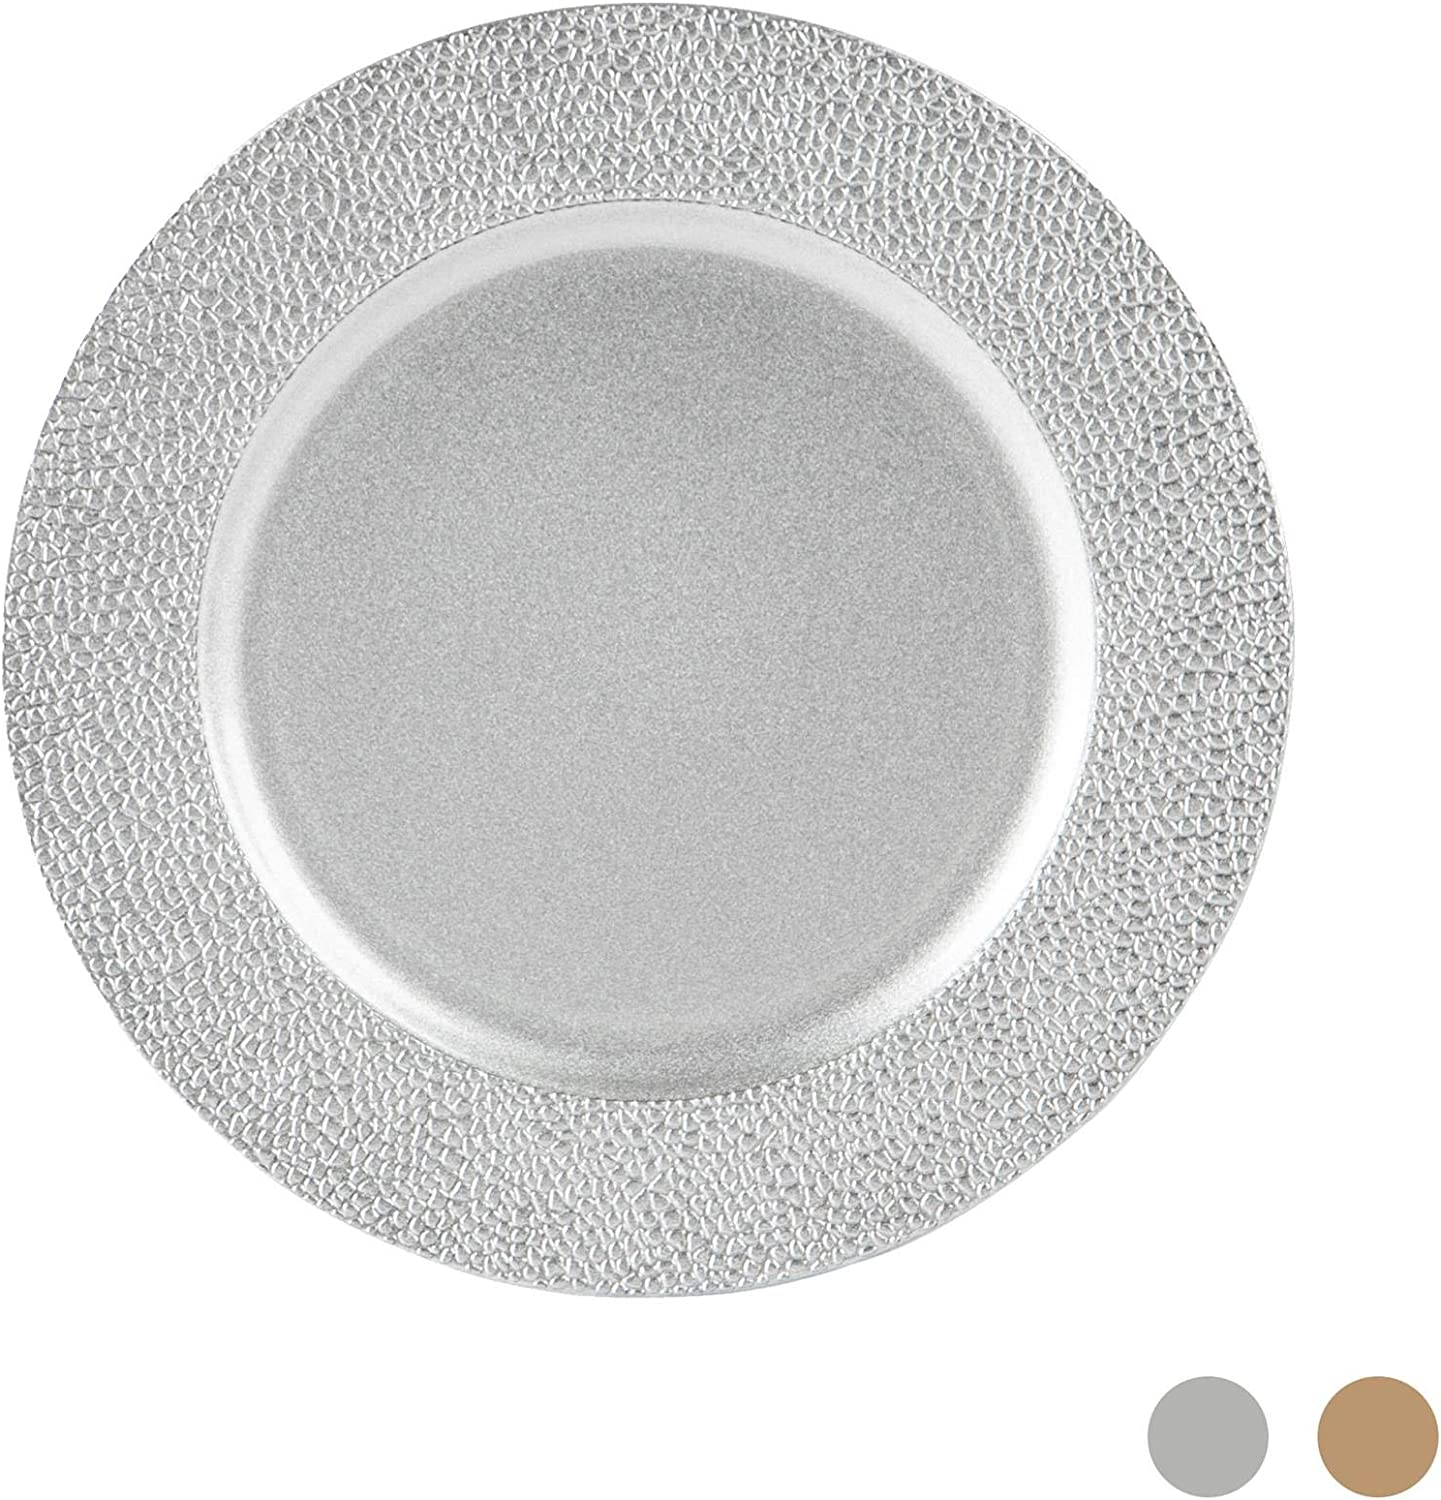 Decorative Under-plate Silver Argon Tableware Single Charger Plate 33cm Hammered Edge